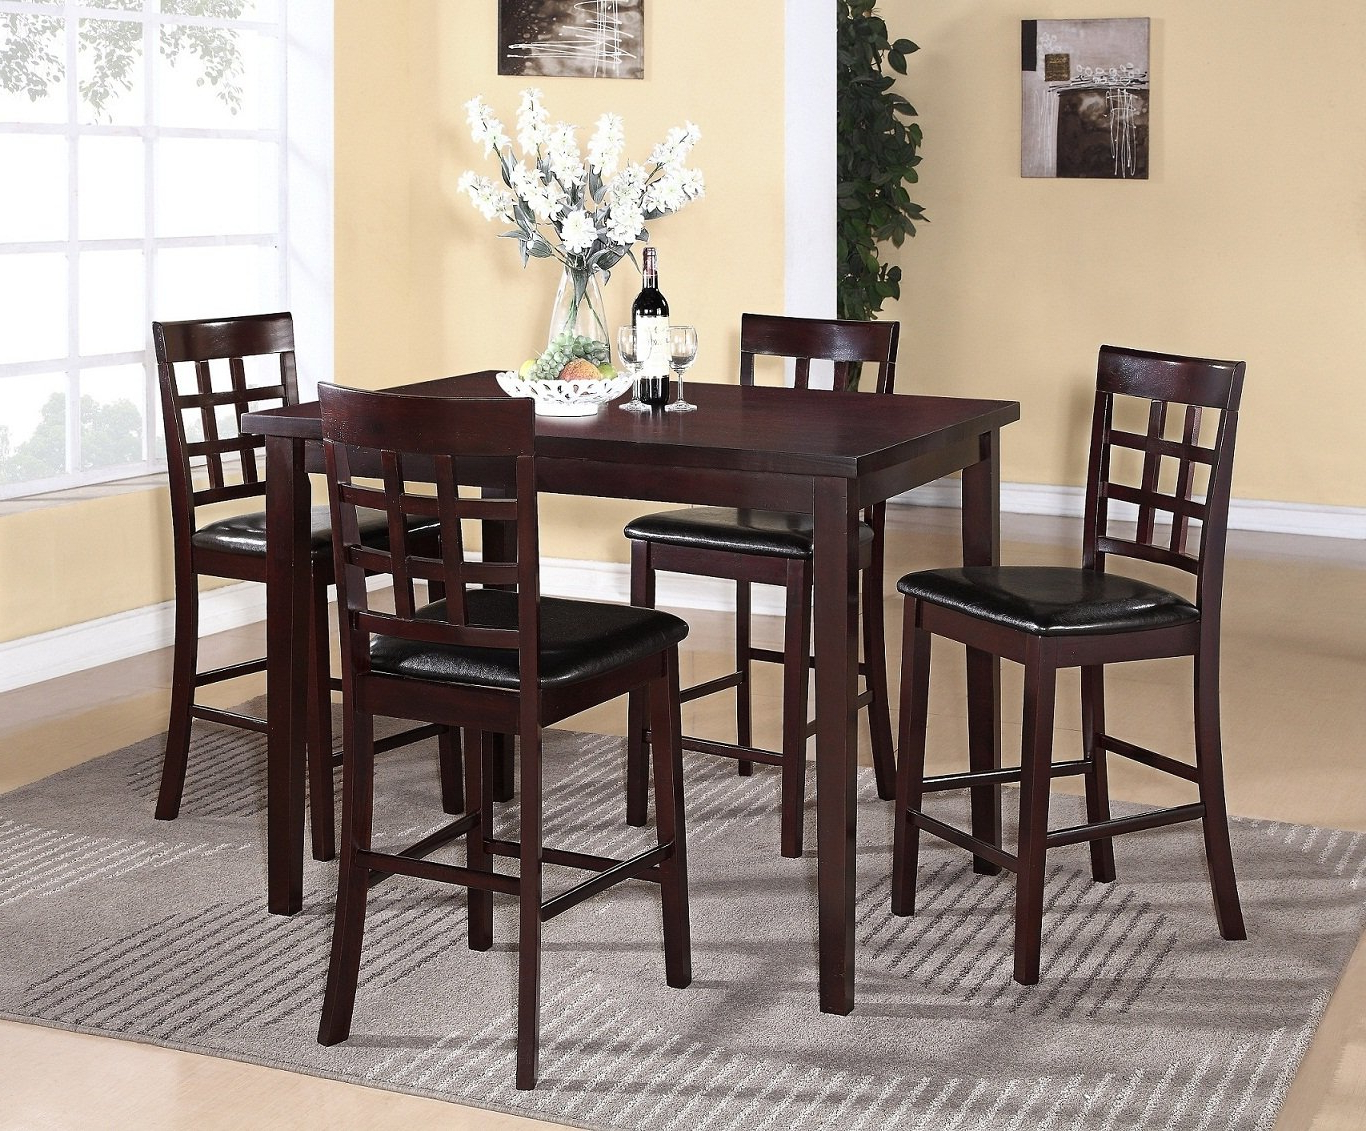 Espresso Finish Wood Classic Design Dining Tables Pertaining To Current Poka 5Pc Espresso Finish Rectangle Wood Counter Height Dining Set (View 6 of 30)